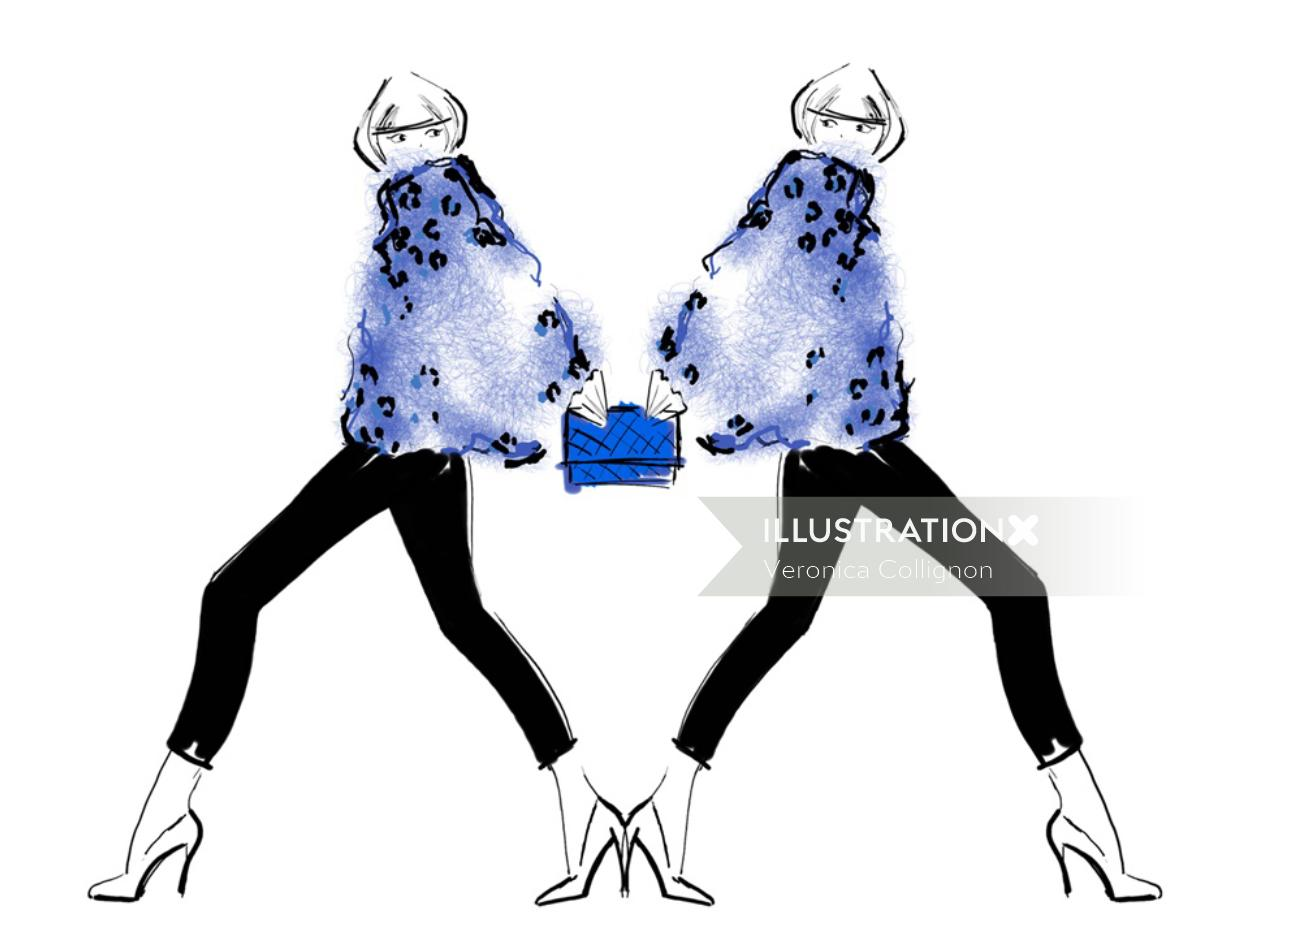 An illustration of woman in blue fashions